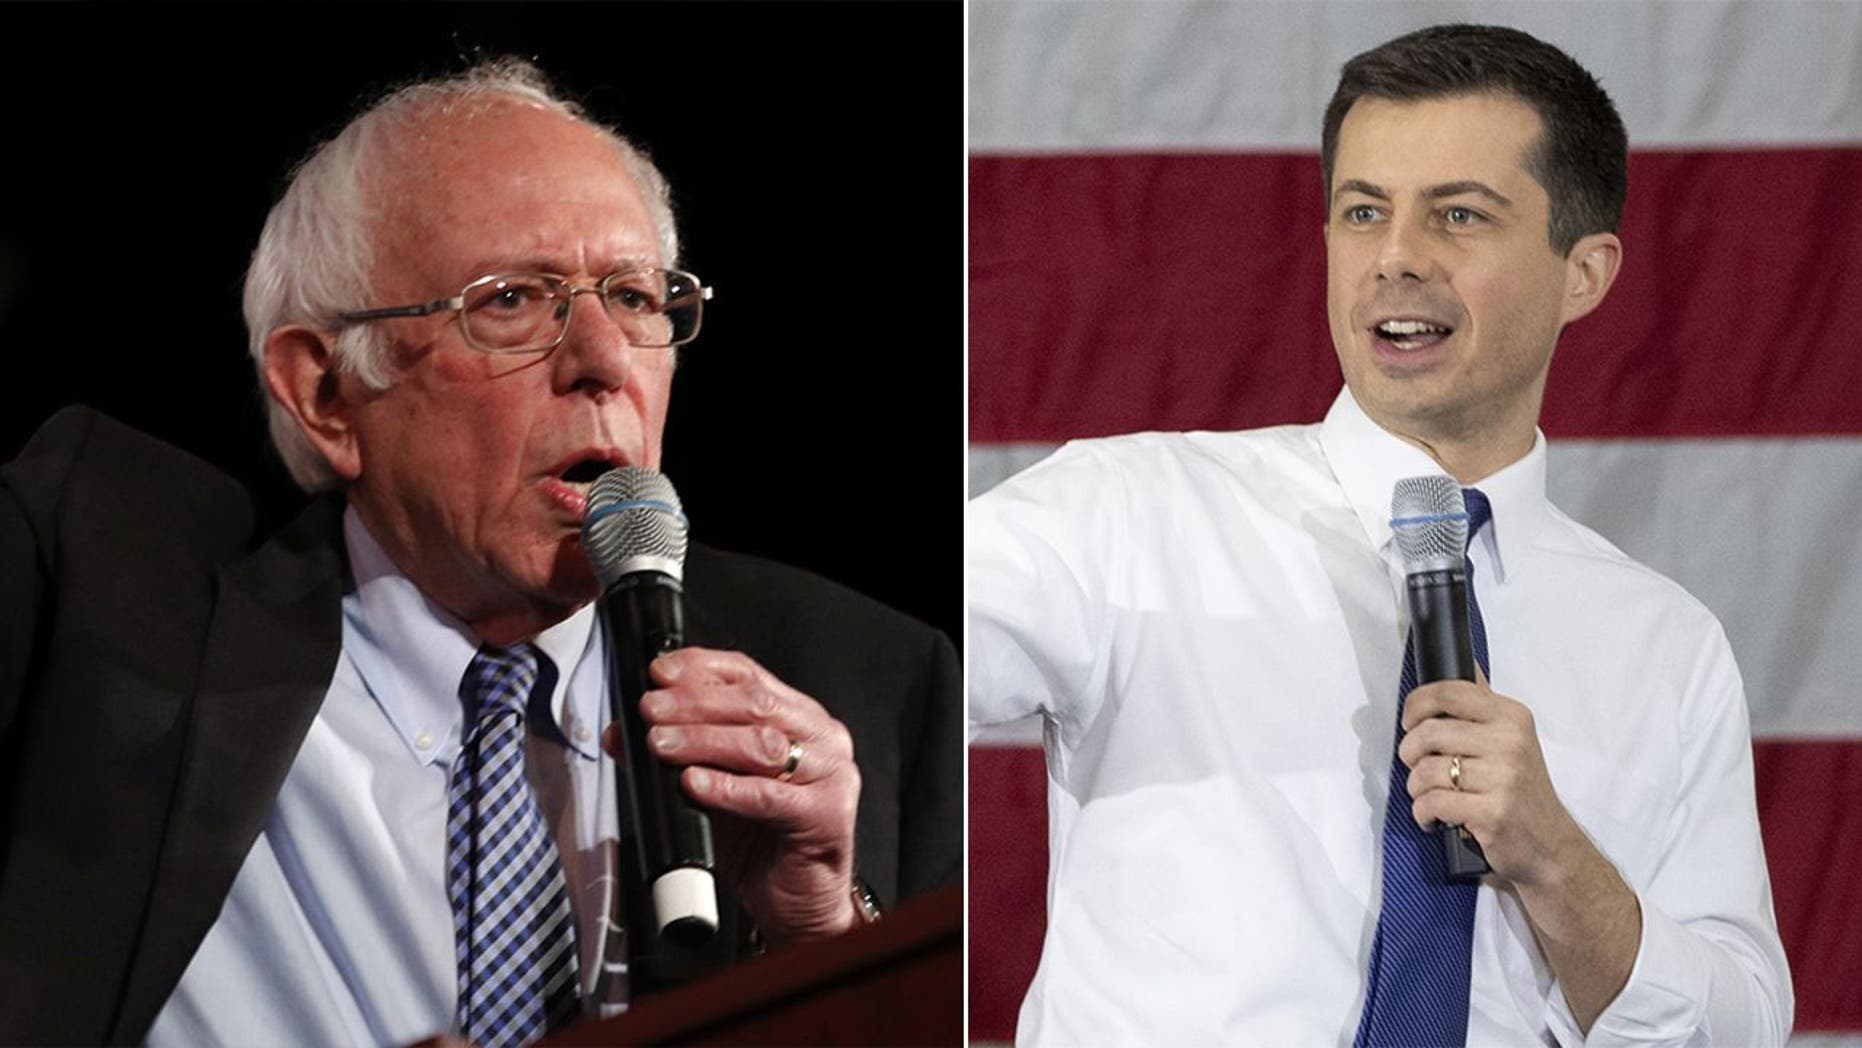 Westlake Legal Group SandersButtigieg021120 New Hampshire primary voting begins as Sanders and Buttigieg battle for top spot, Biden feels the heat fox-news/columns/fox-news-first fox news fnc/us fnc e222f67a-1e1b-5a3d-8611-db63a878672d article